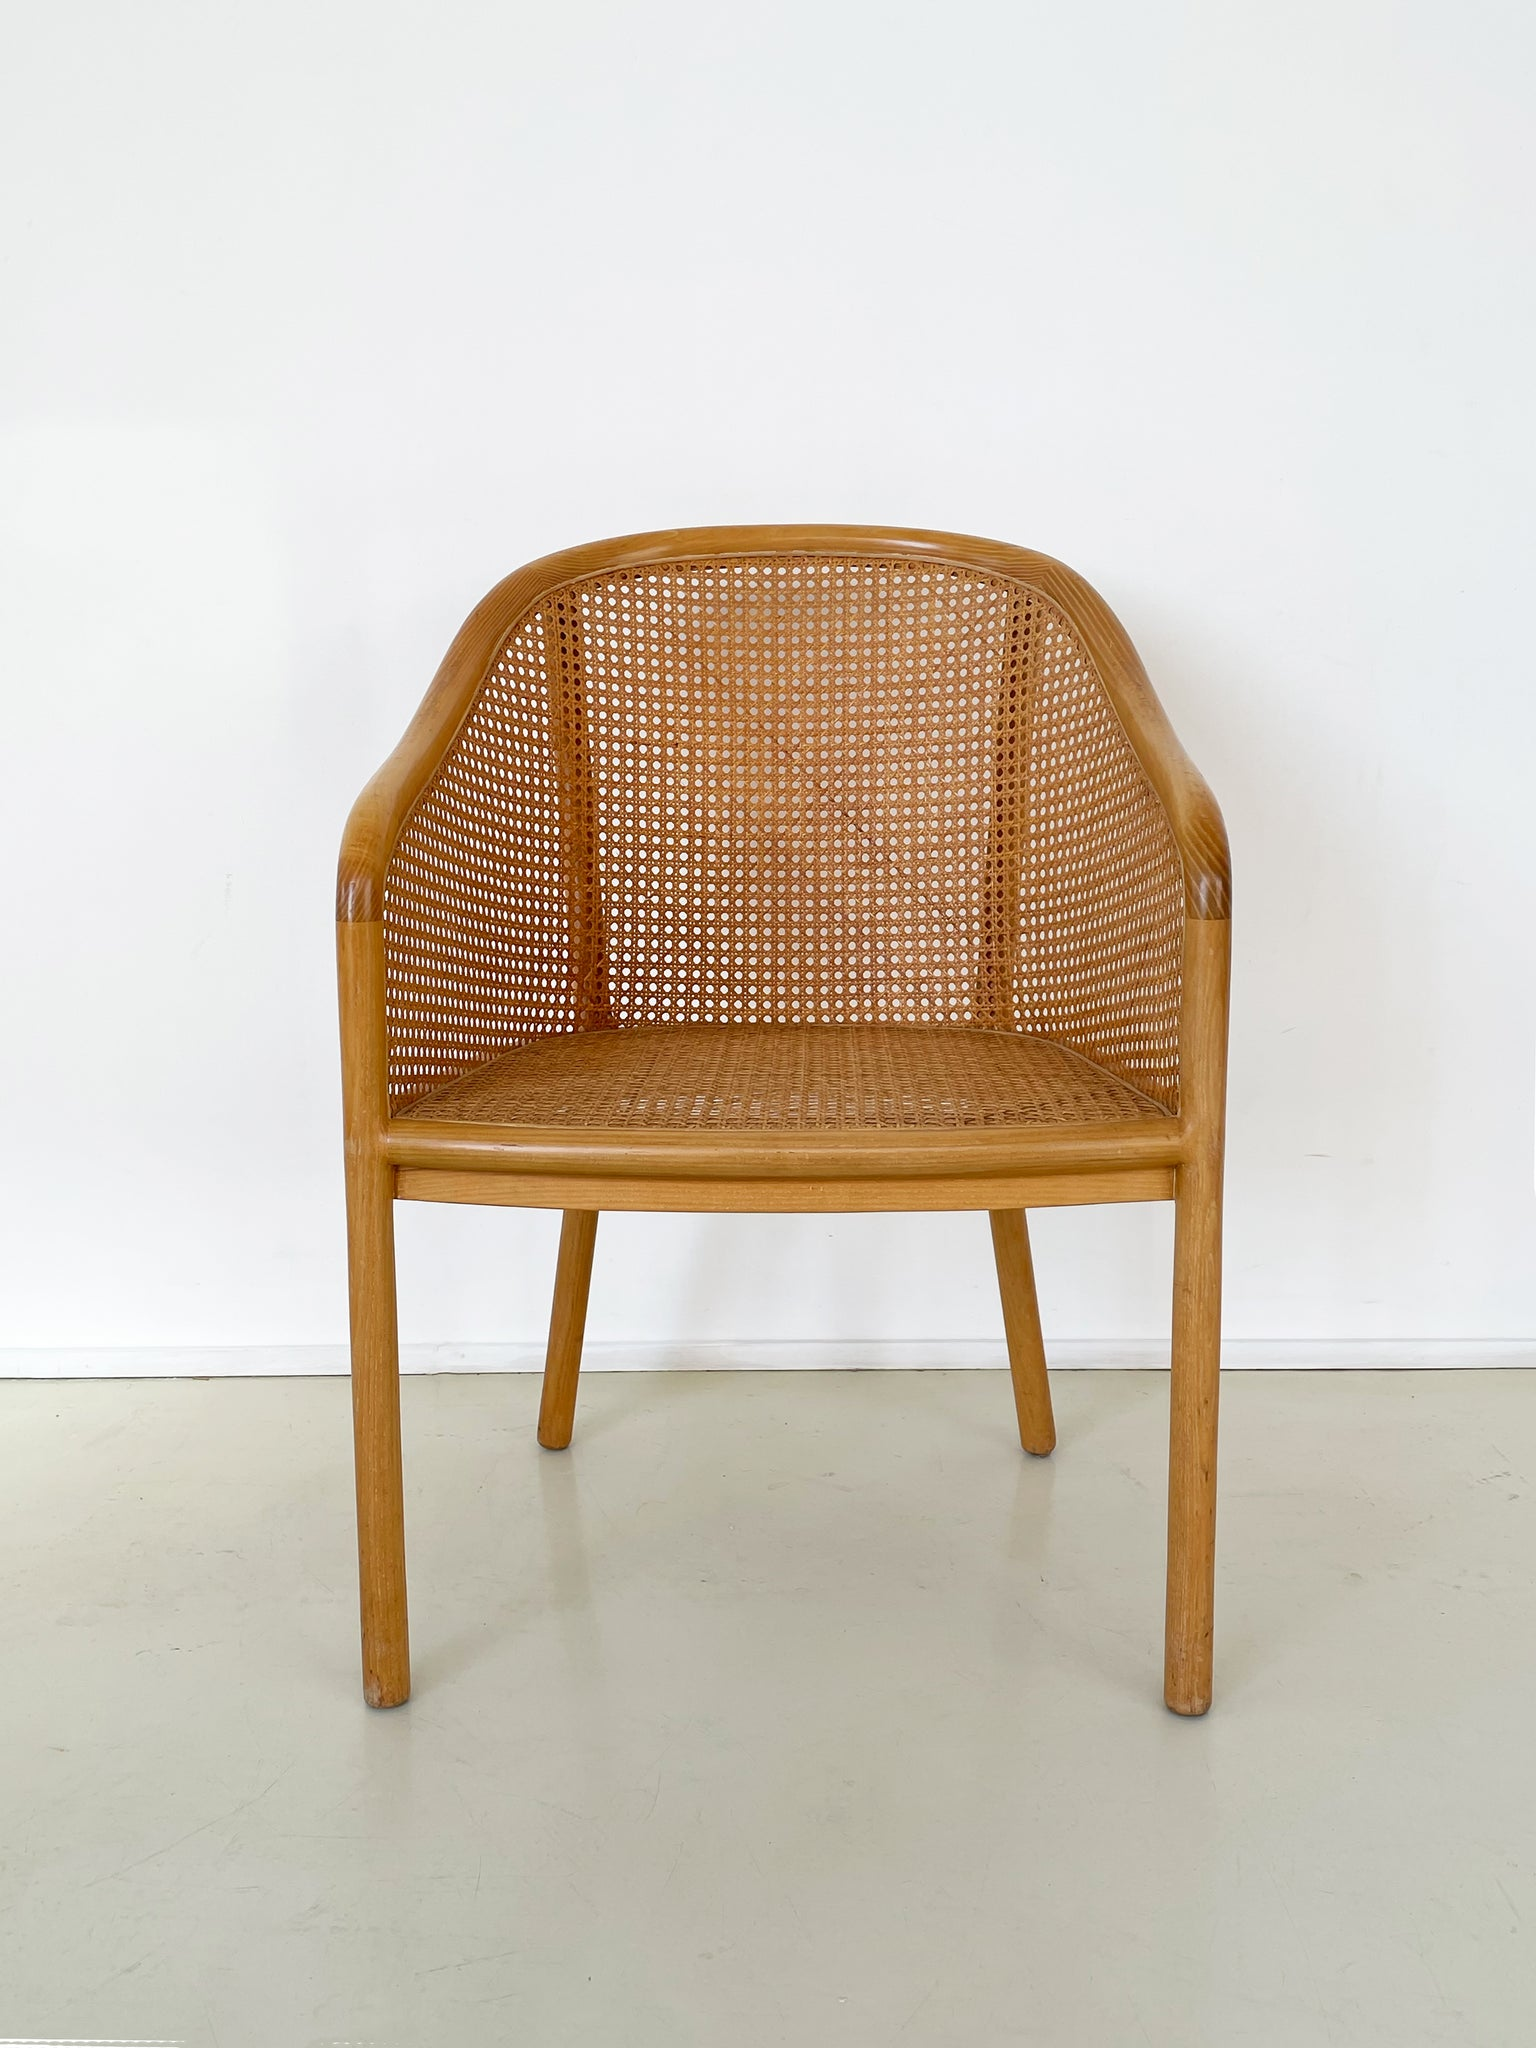 1970s Cane and Ash Wood Chairs by Ward Bennett for Brickel Associates - Per